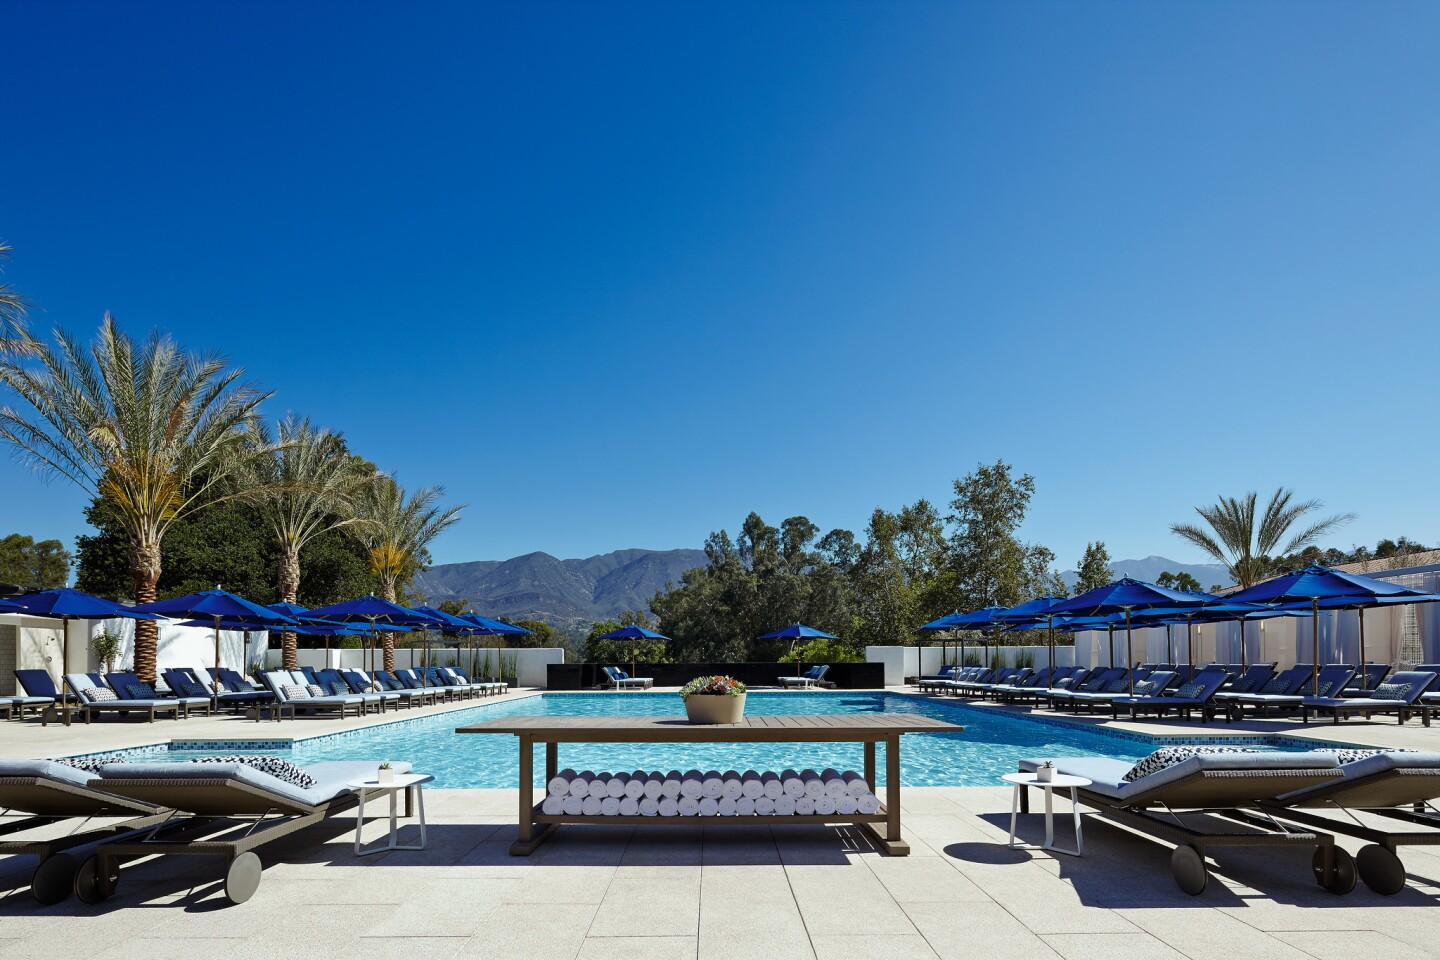 The Indigo Pool & Bar is a new adults-only space at the Ojai Valley Inn & Spa.